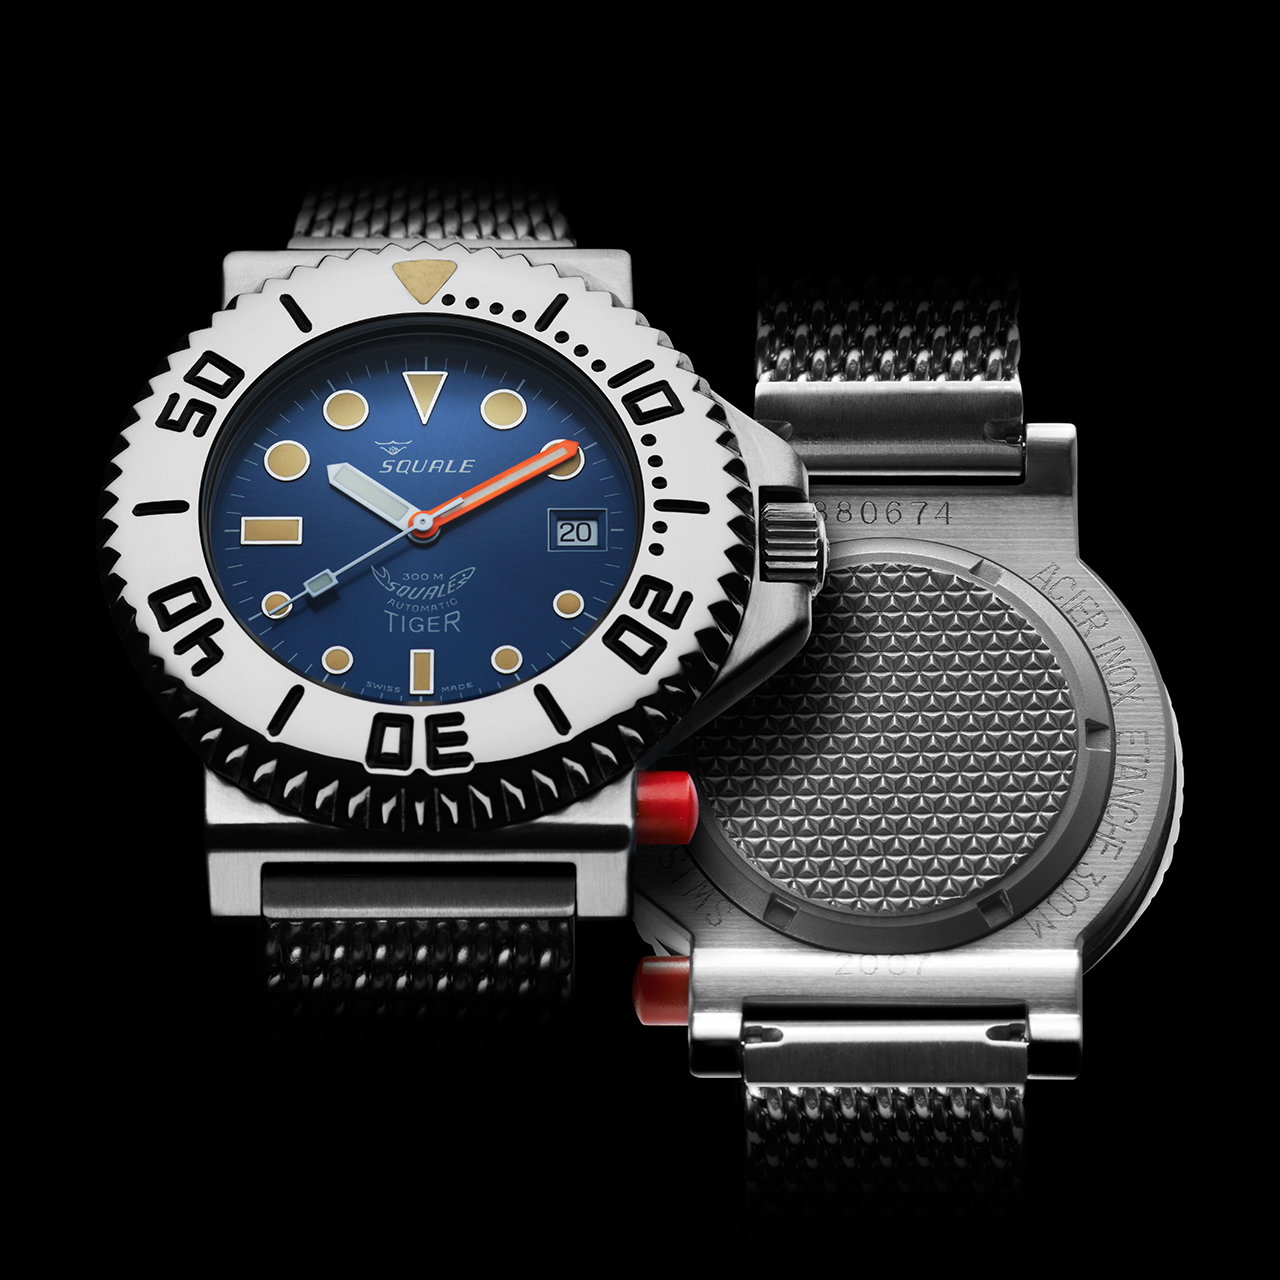 Squale Tiger Dive Watch - Blue